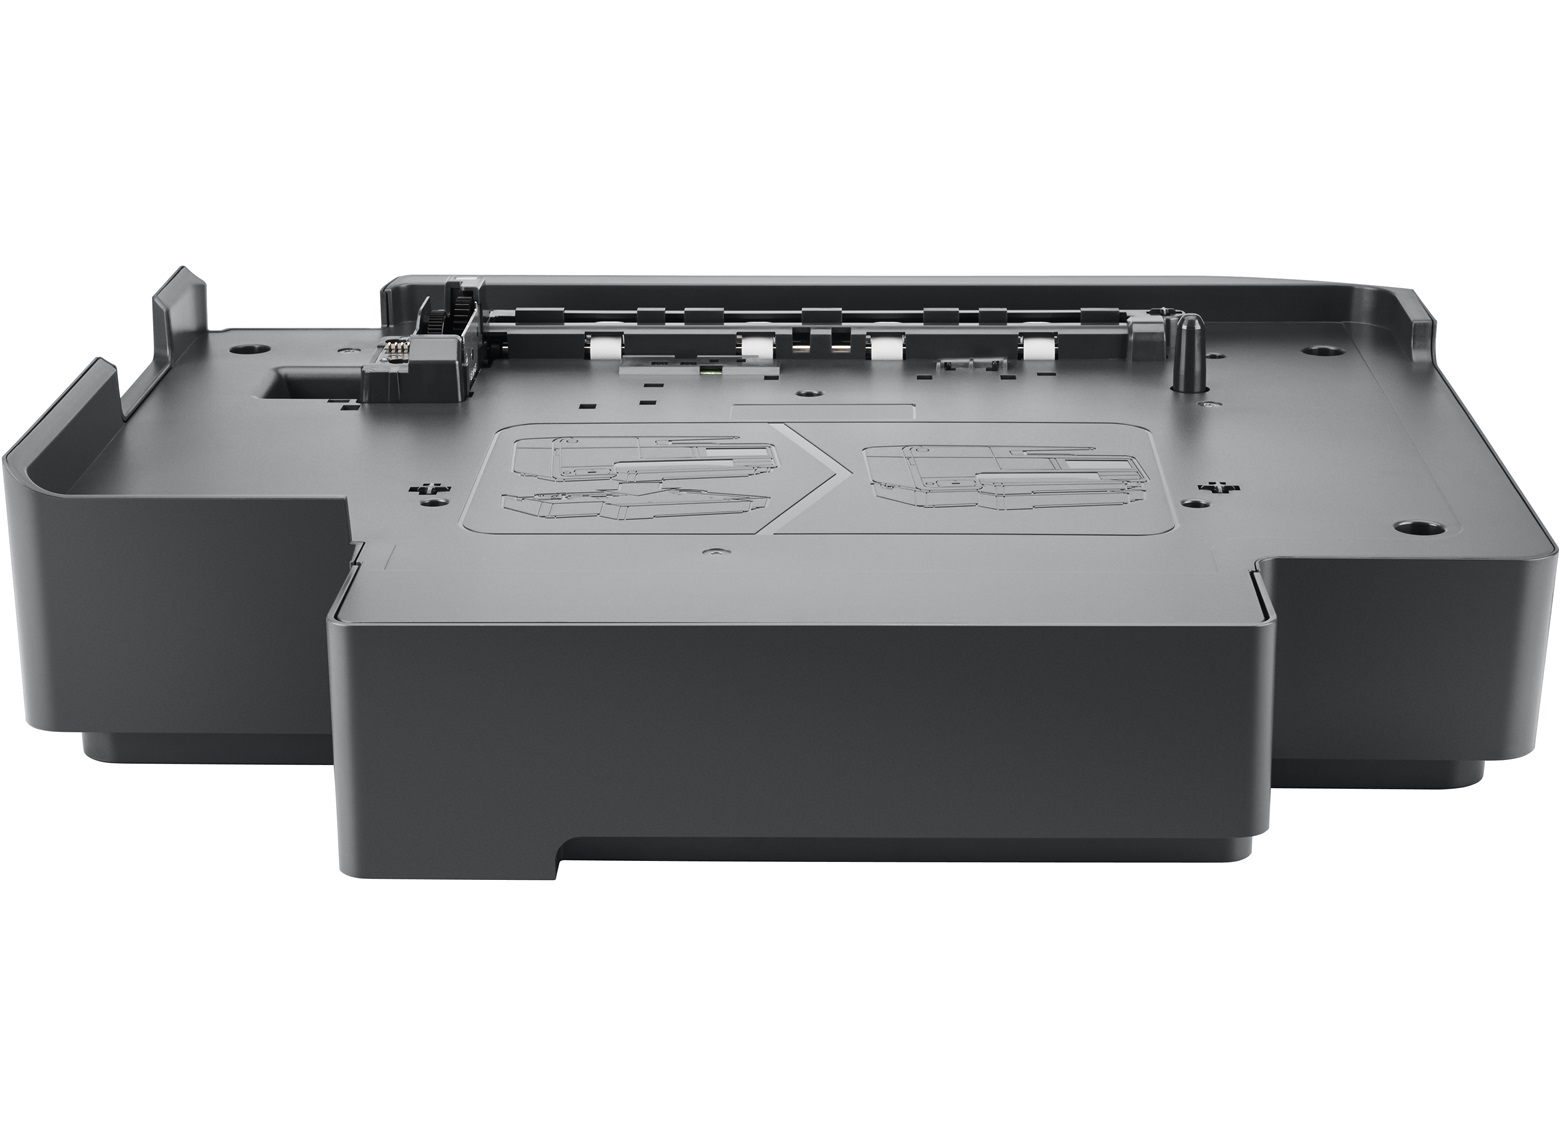 Hewlett Packard (HP) HP Officejet Pro 8610/8620 250-Blatt Papierfach